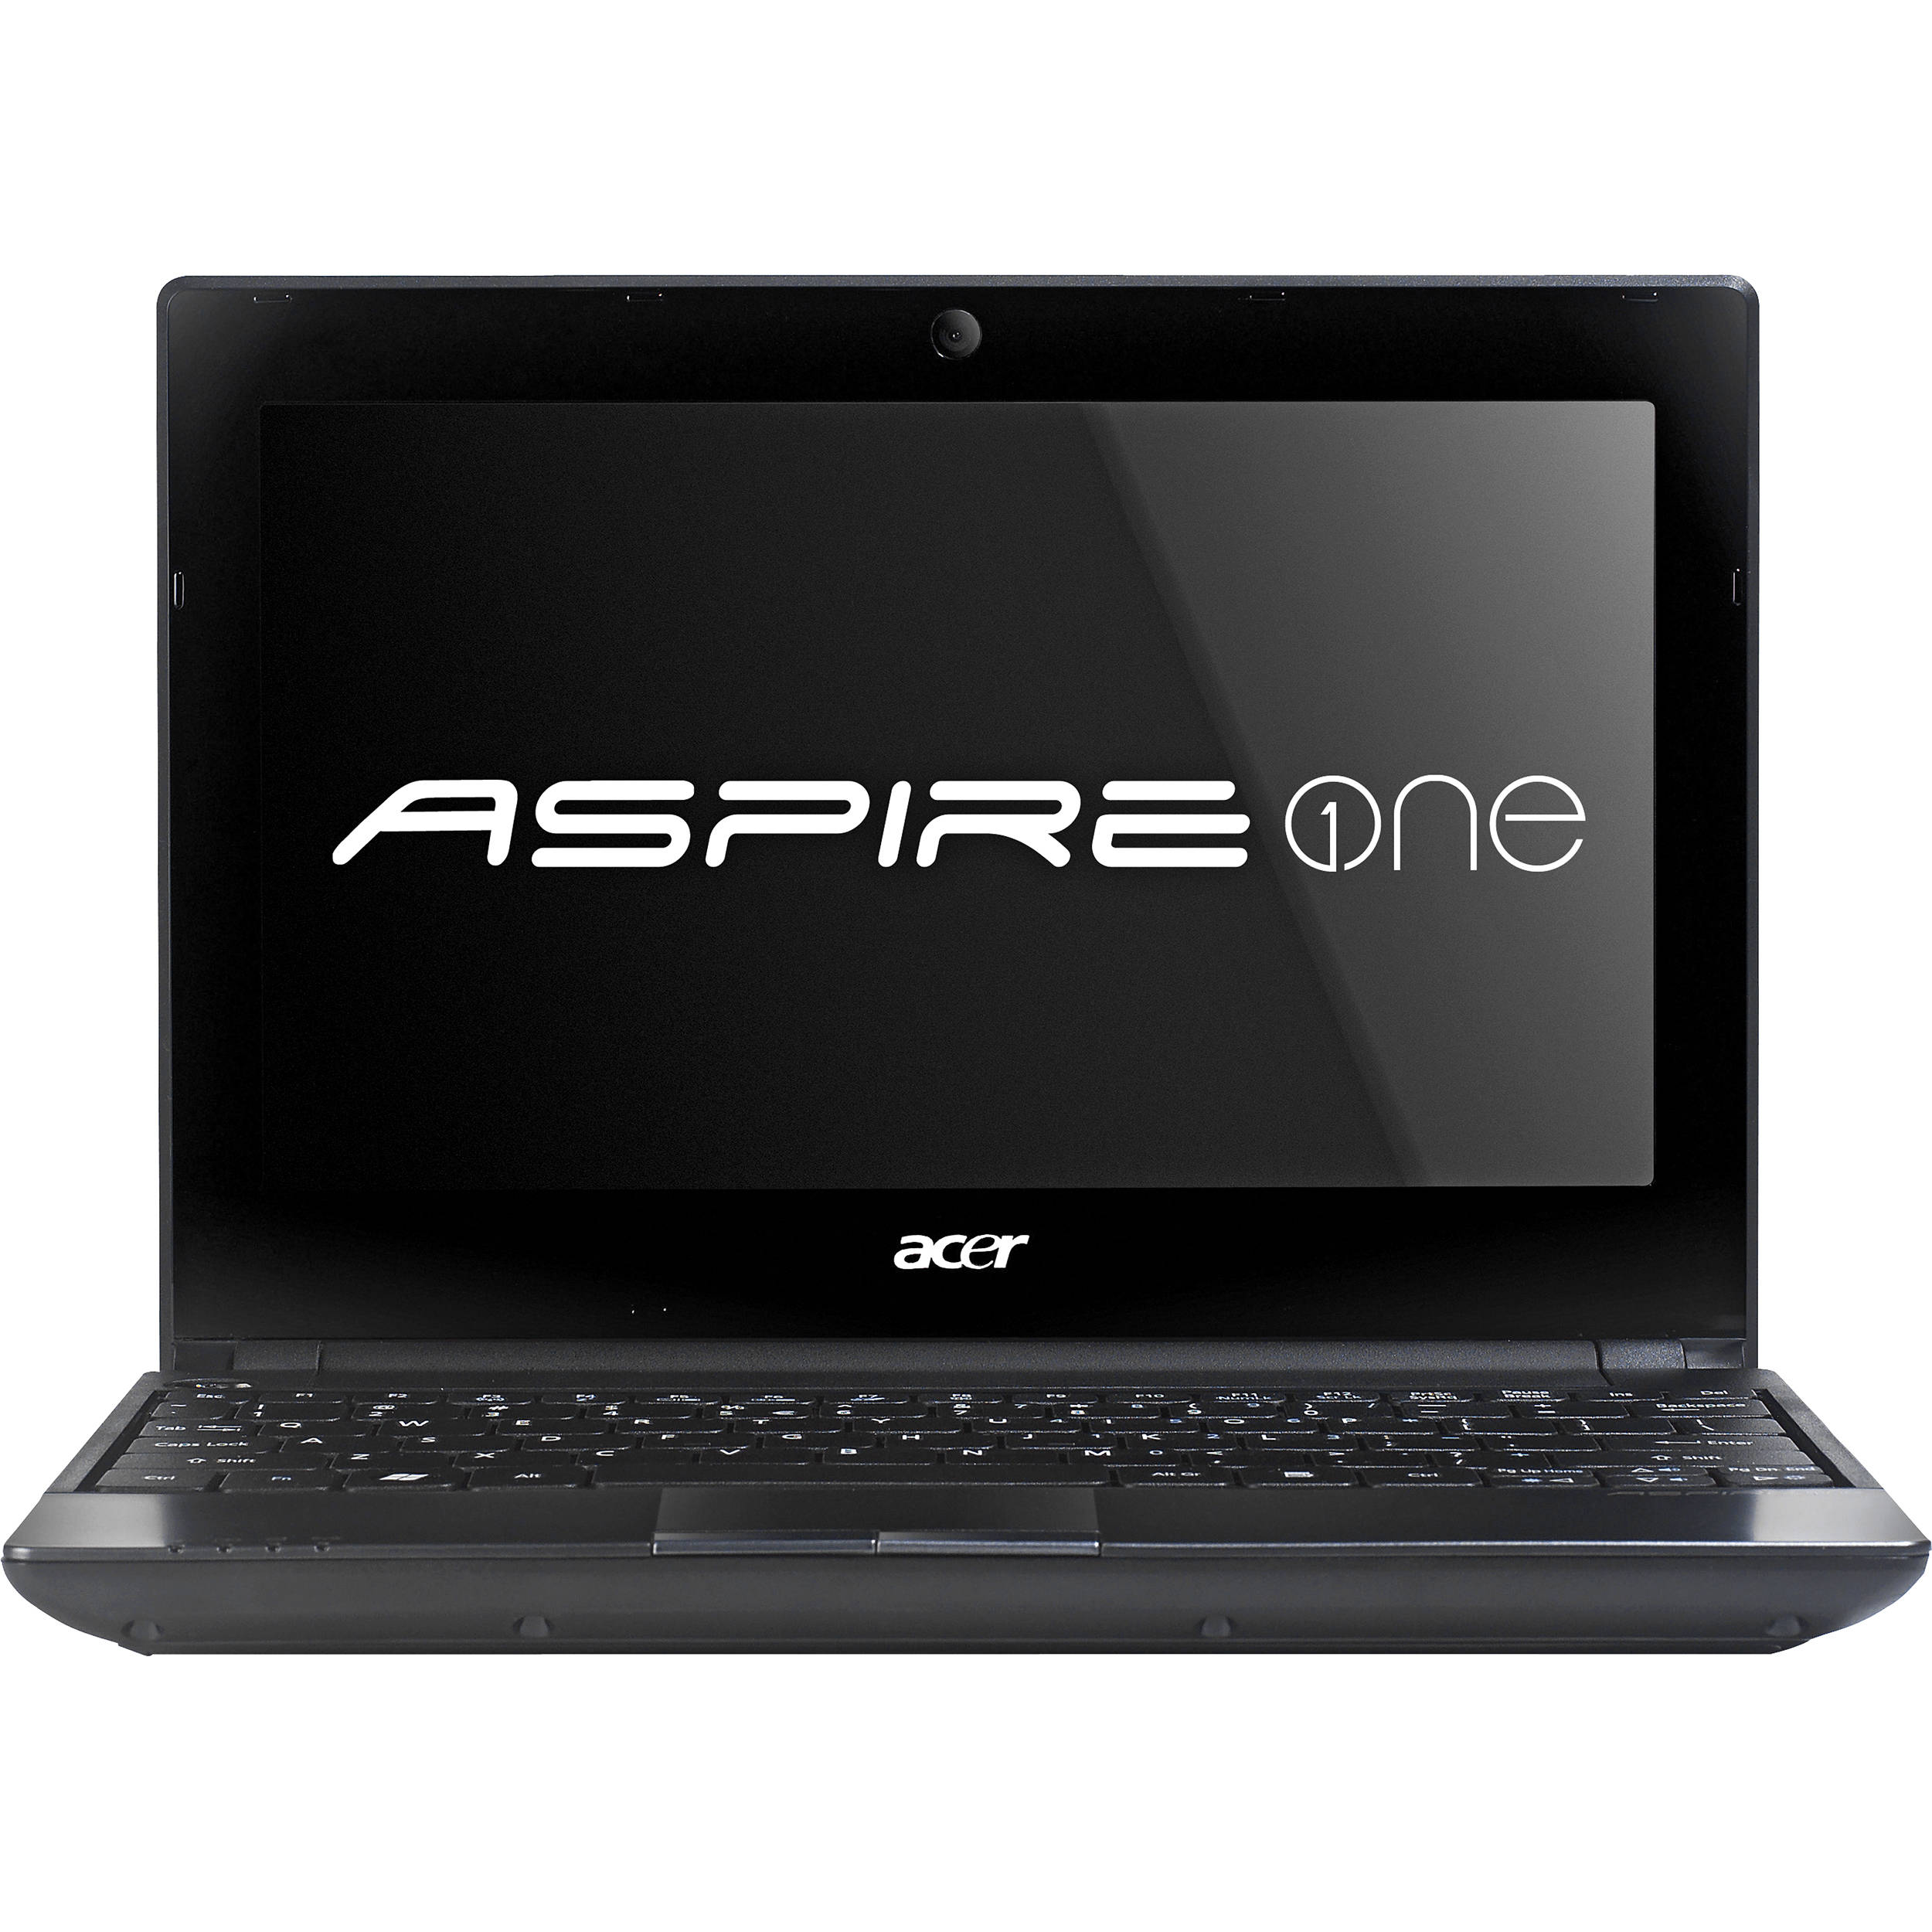 ACER AO521 NETBOOK DOWNLOAD DRIVERS